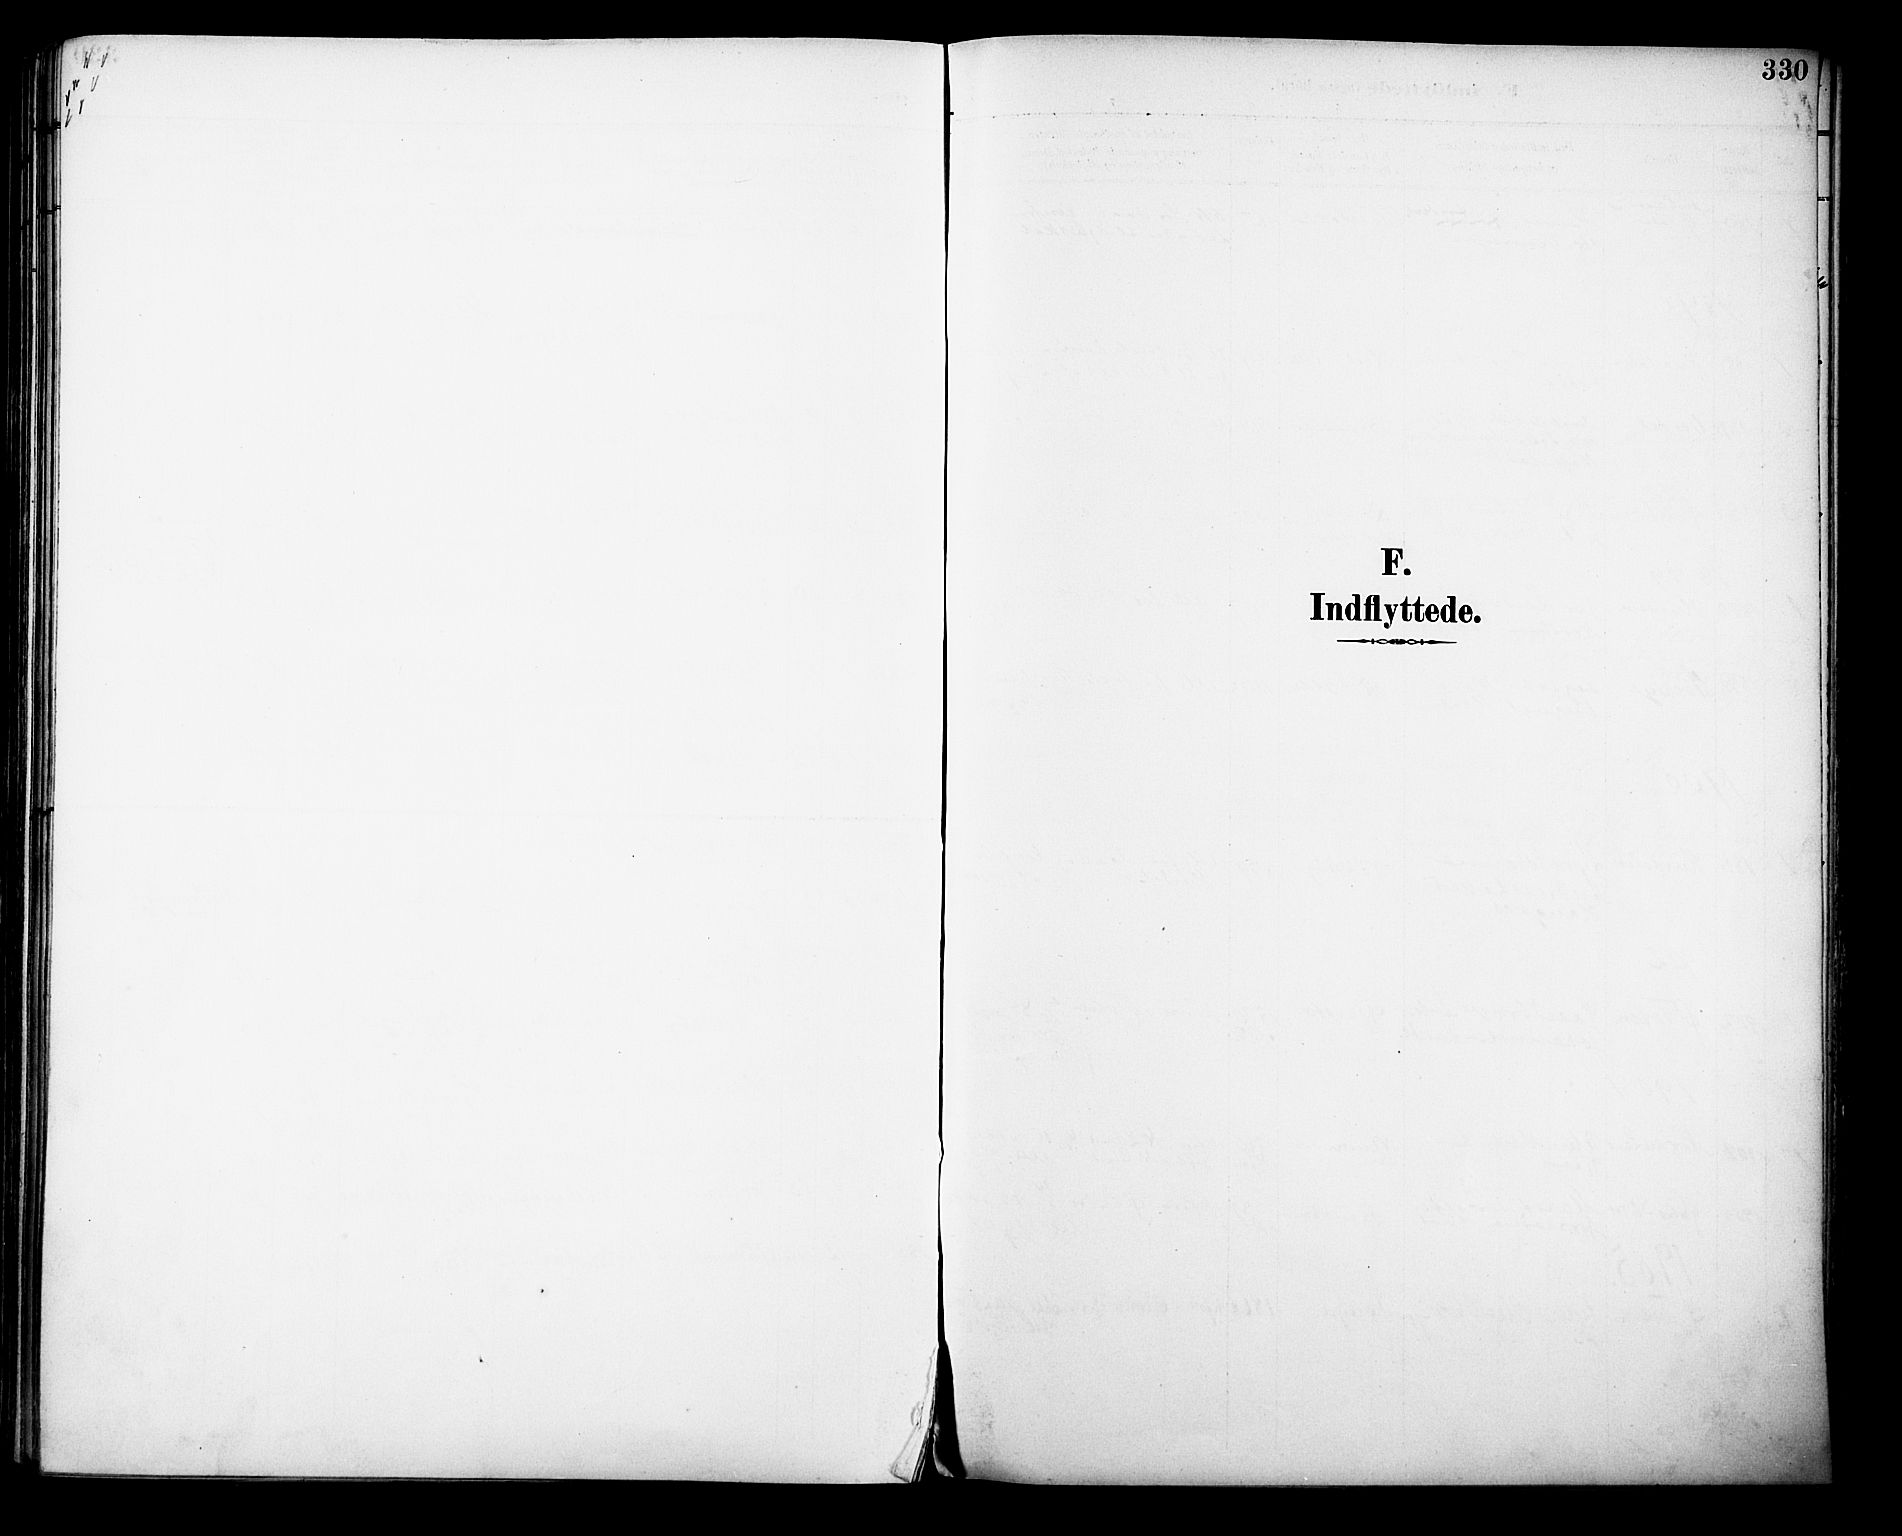 SAH, Vestre Toten prestekontor, H/Ha/Haa/L0013: Parish register (official) no. 13, 1895-1911, p. 330